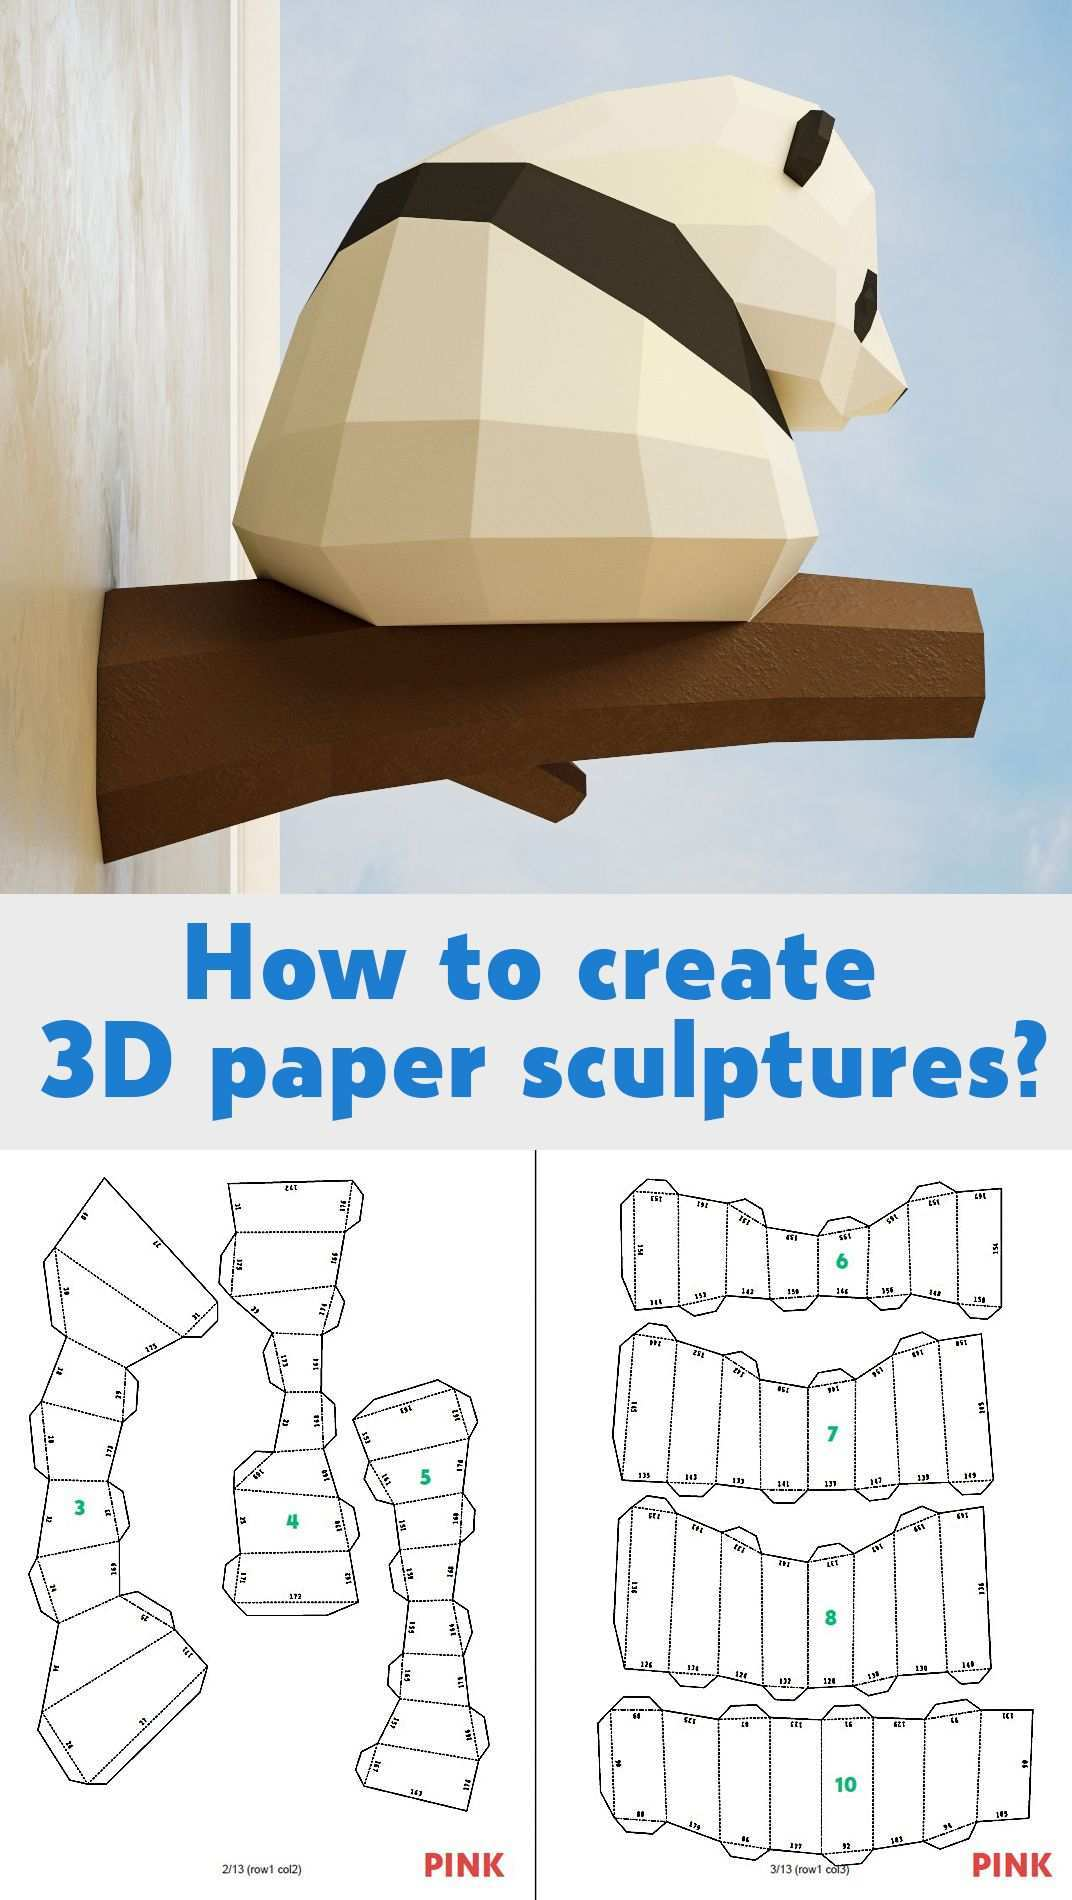 Papercraft Little Panda Diy Paper Craft 3d Template Pdf Kit Make Your Own Low Poly Baby Panda Origami Pepakura Home Decor Idea Statue Paper Crafts Diy Paper Crafts Paper Crafts Origami